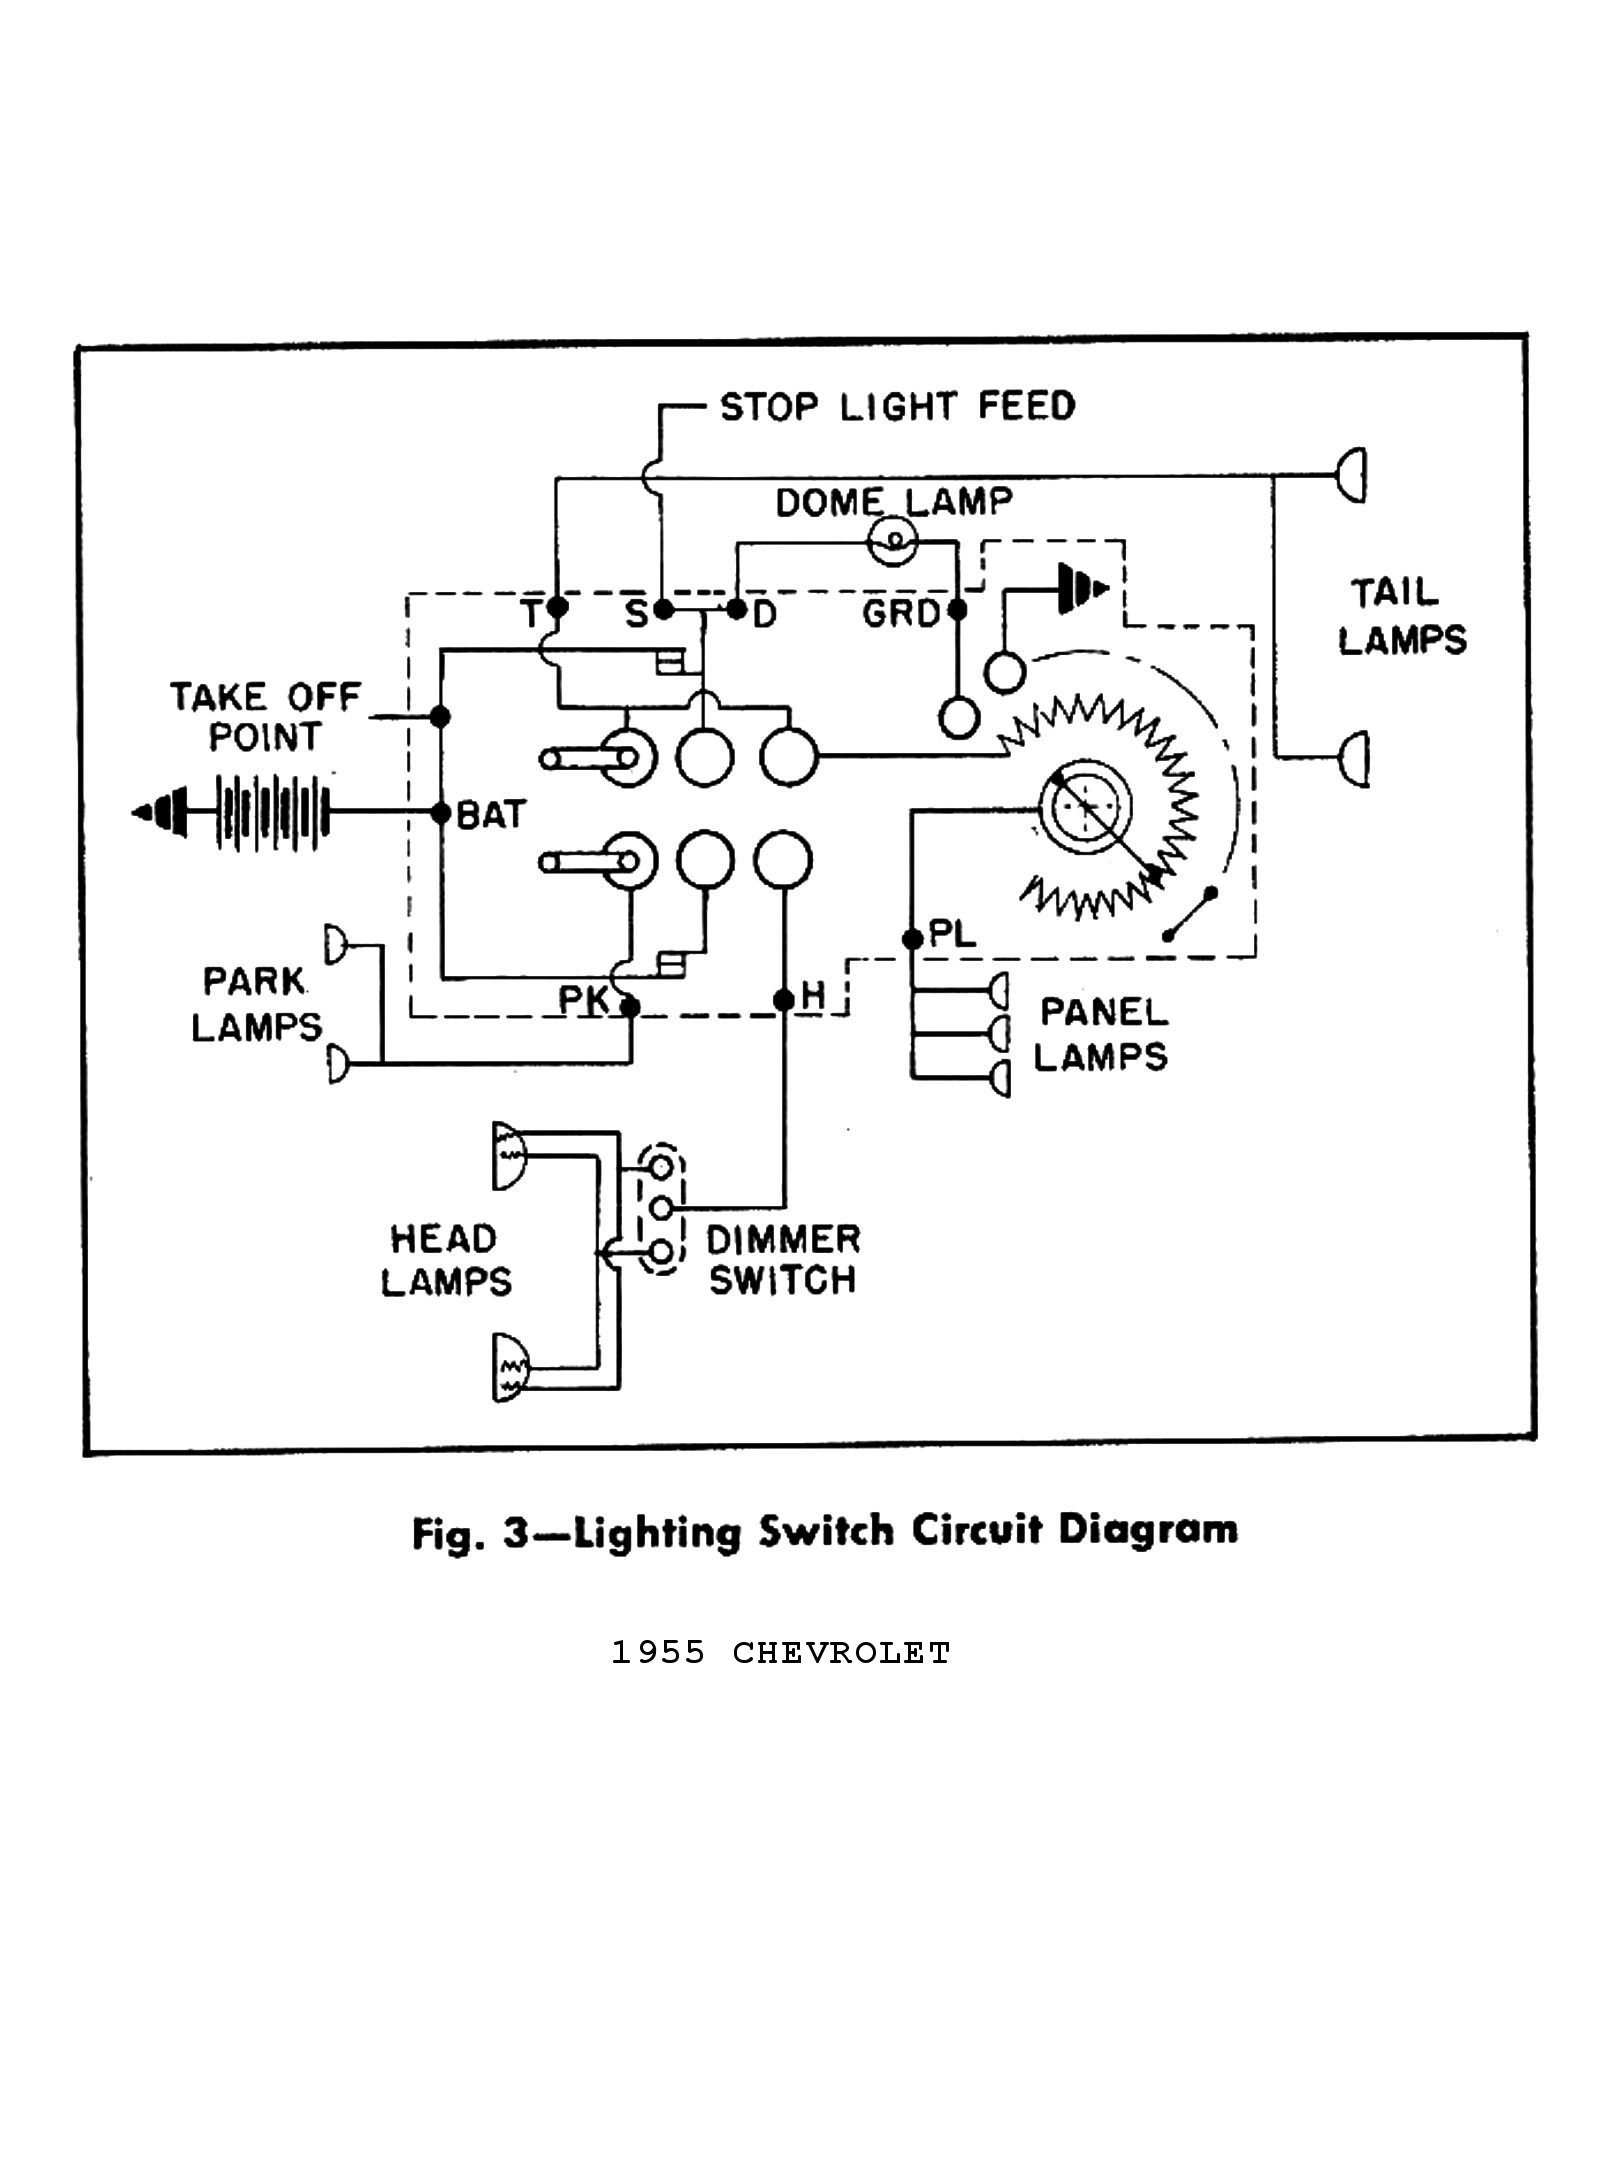 55ctsm1203 light switch wiring diagram on 59?? the 1947 present chevrolet 1972 chevy truck ignition switch wiring diagram at edmiracle.co